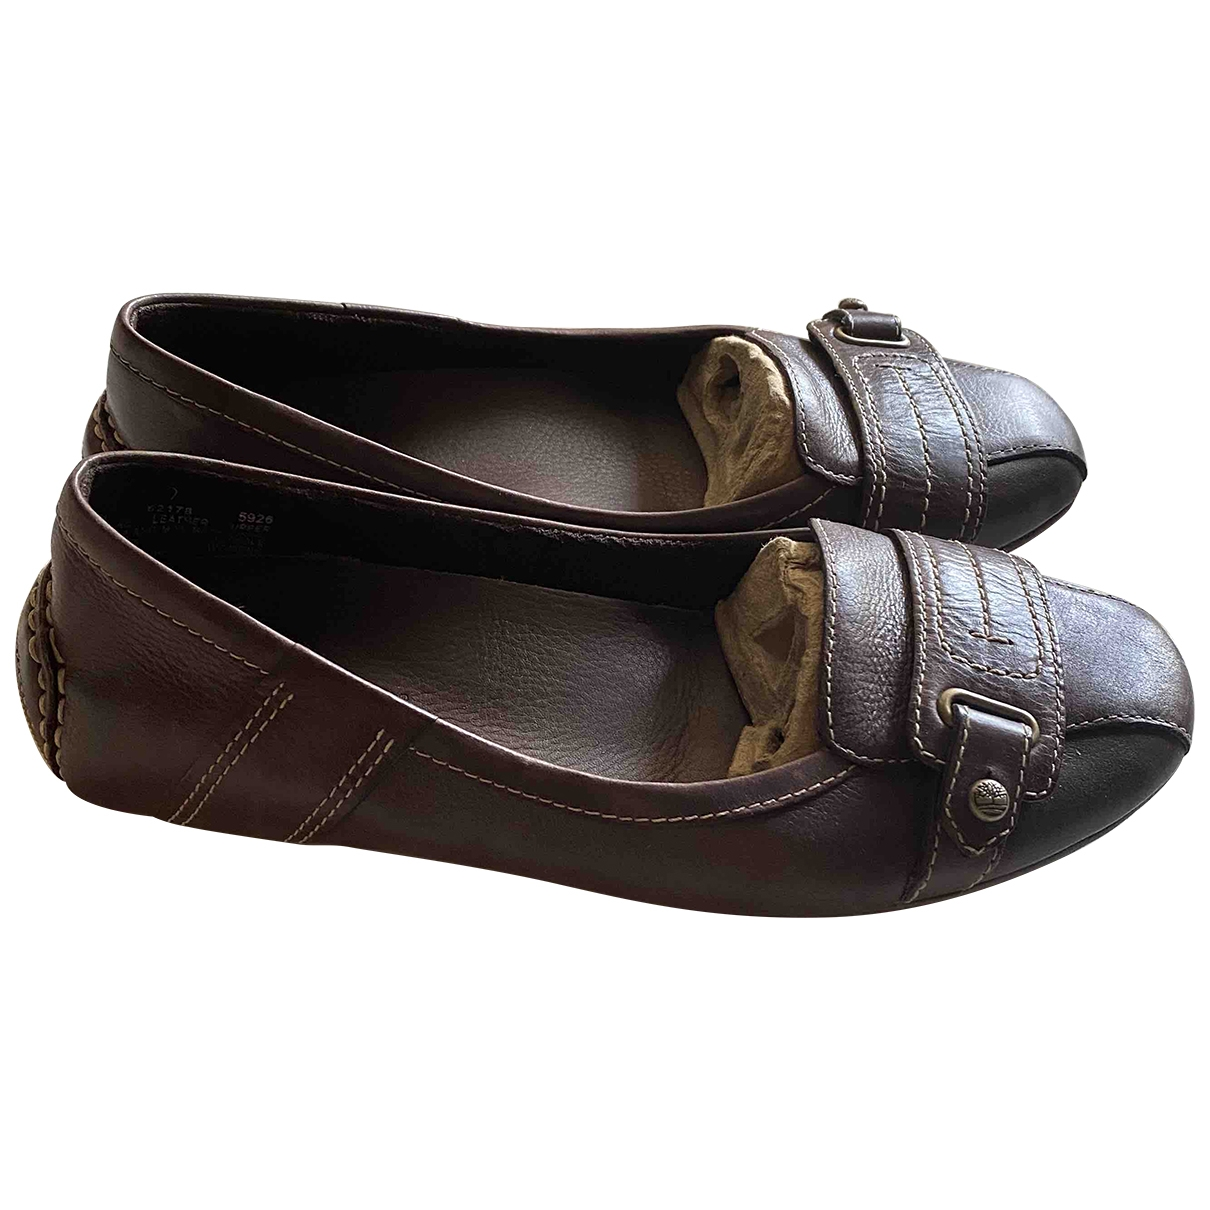 Timberland \N Brown Leather Flats for Women 37 EU